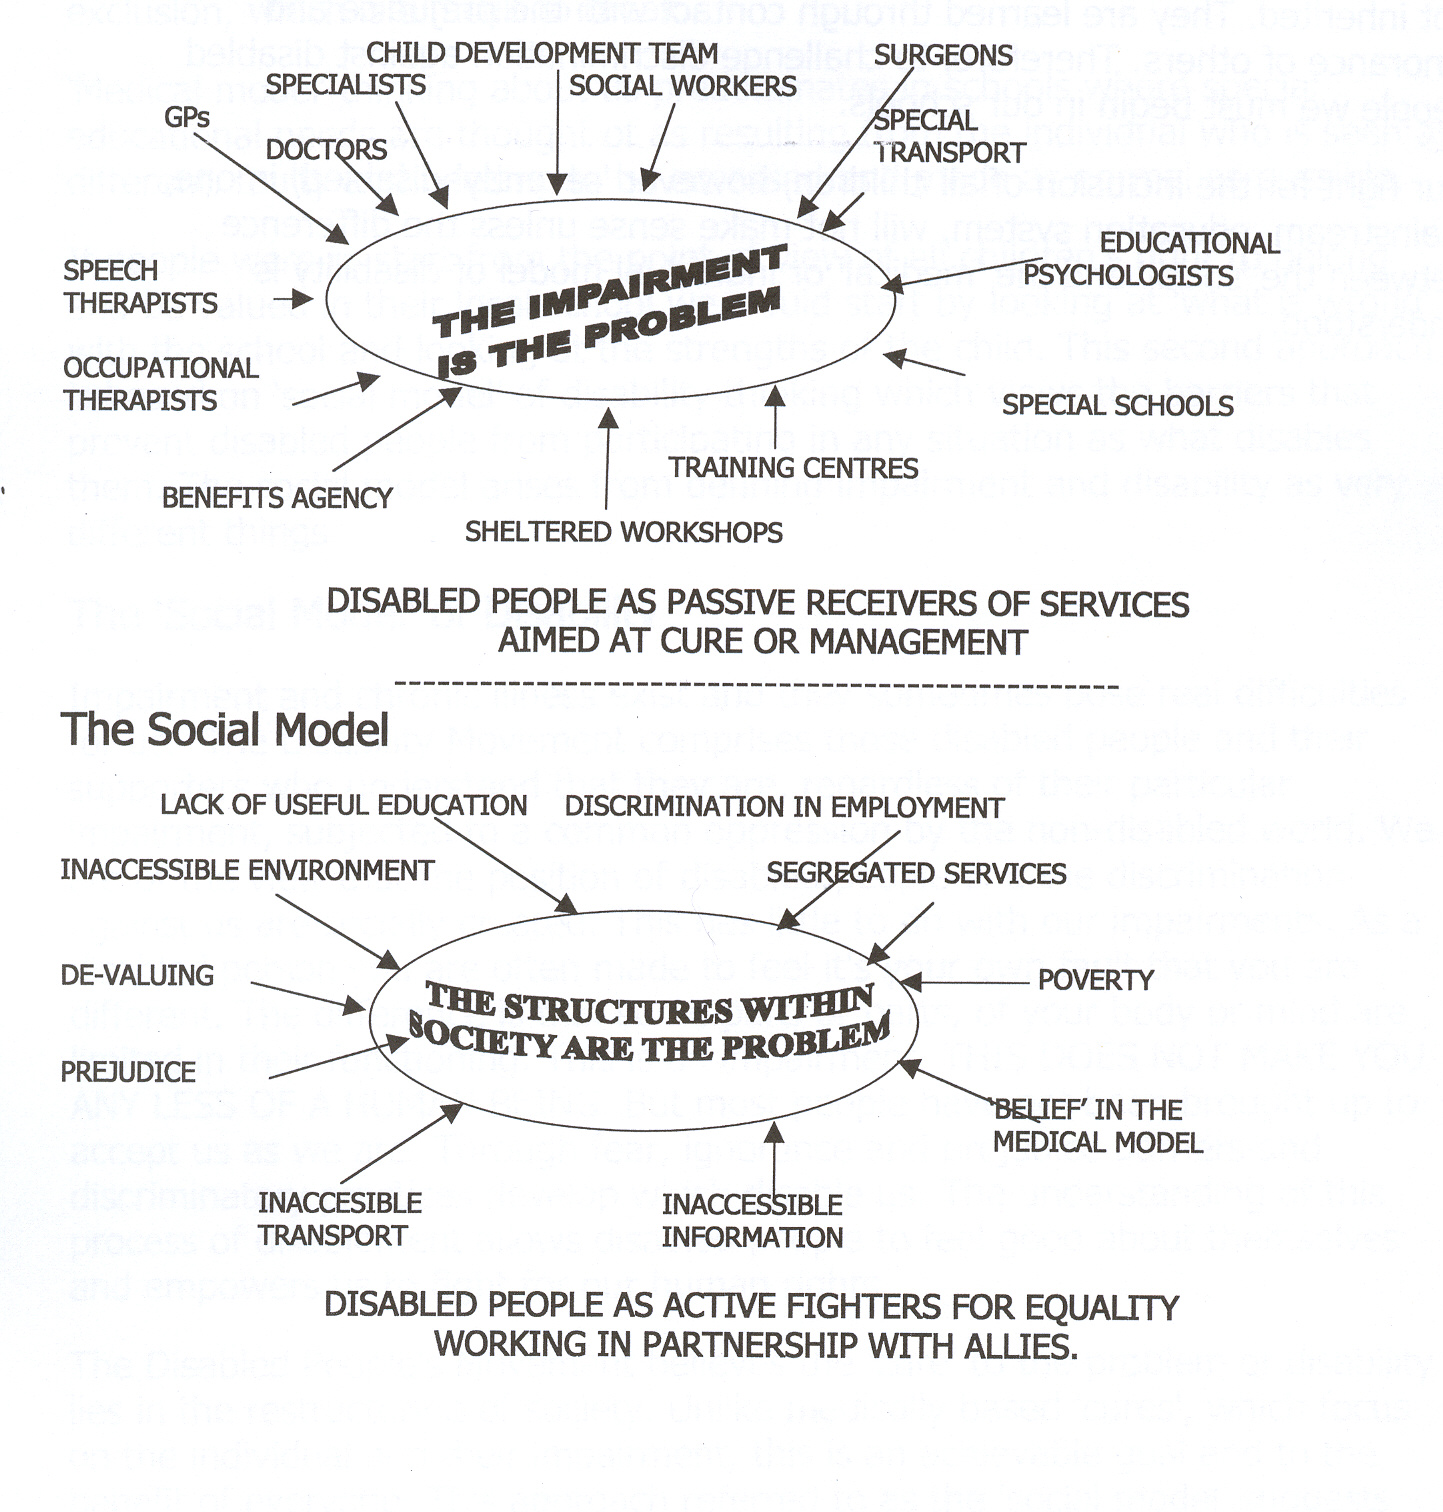 Diagram representing differences between medical and social models